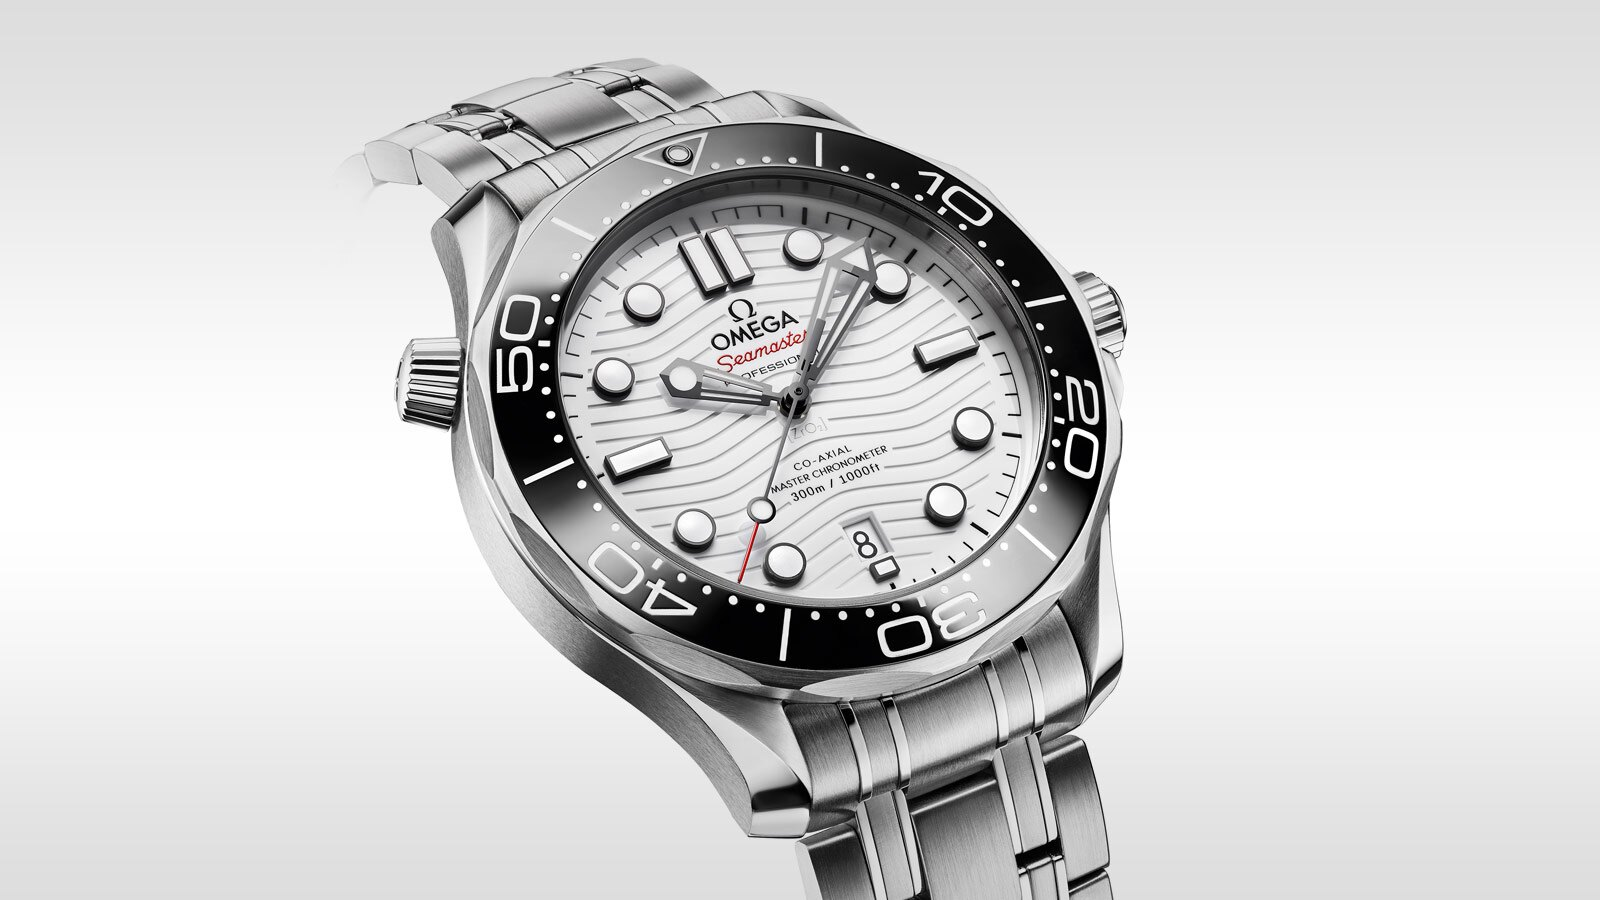 The black bezel is striking to the white dial.